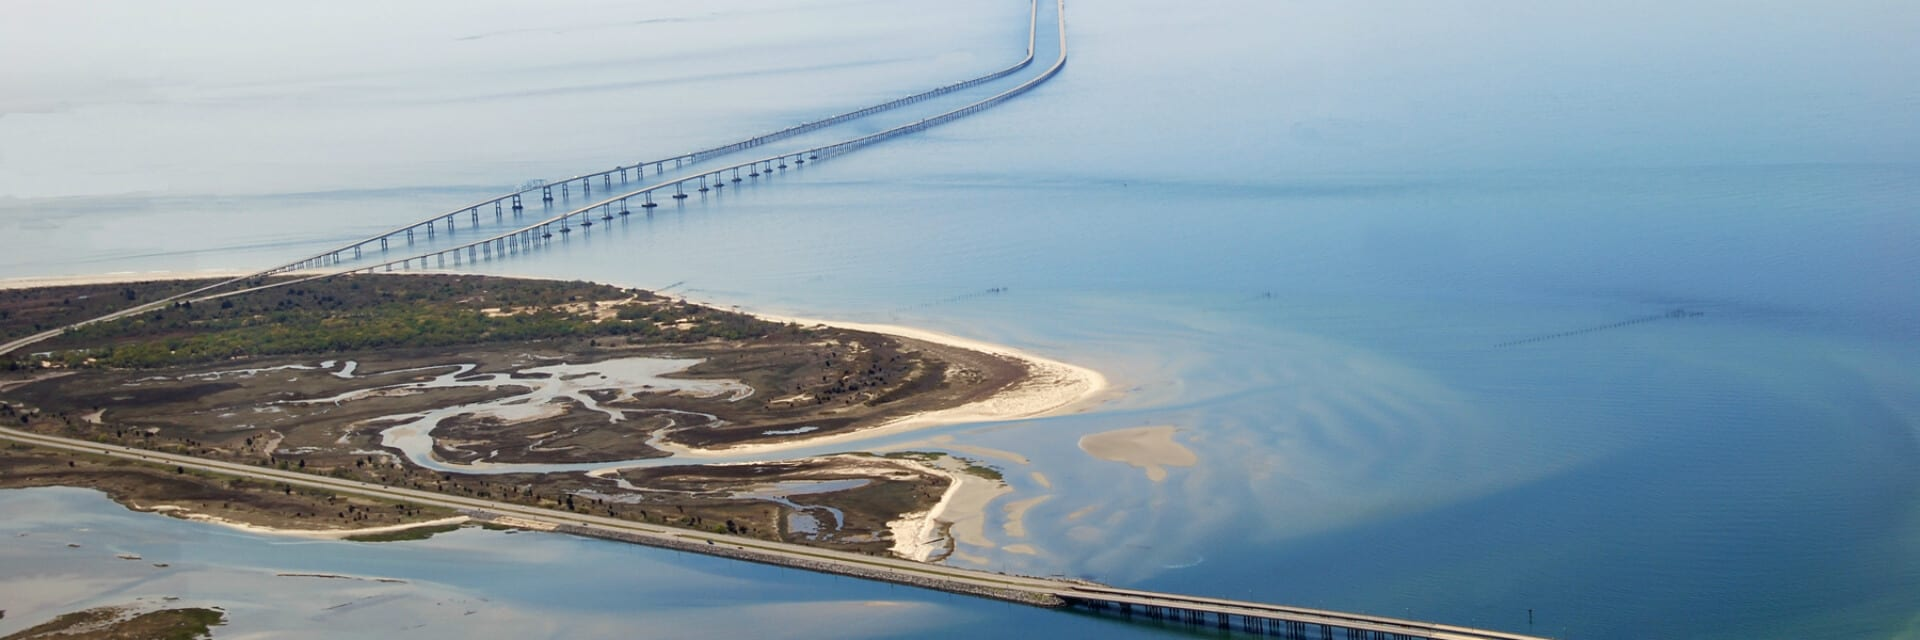 Chesapeake Bay Bridge and Tunnel